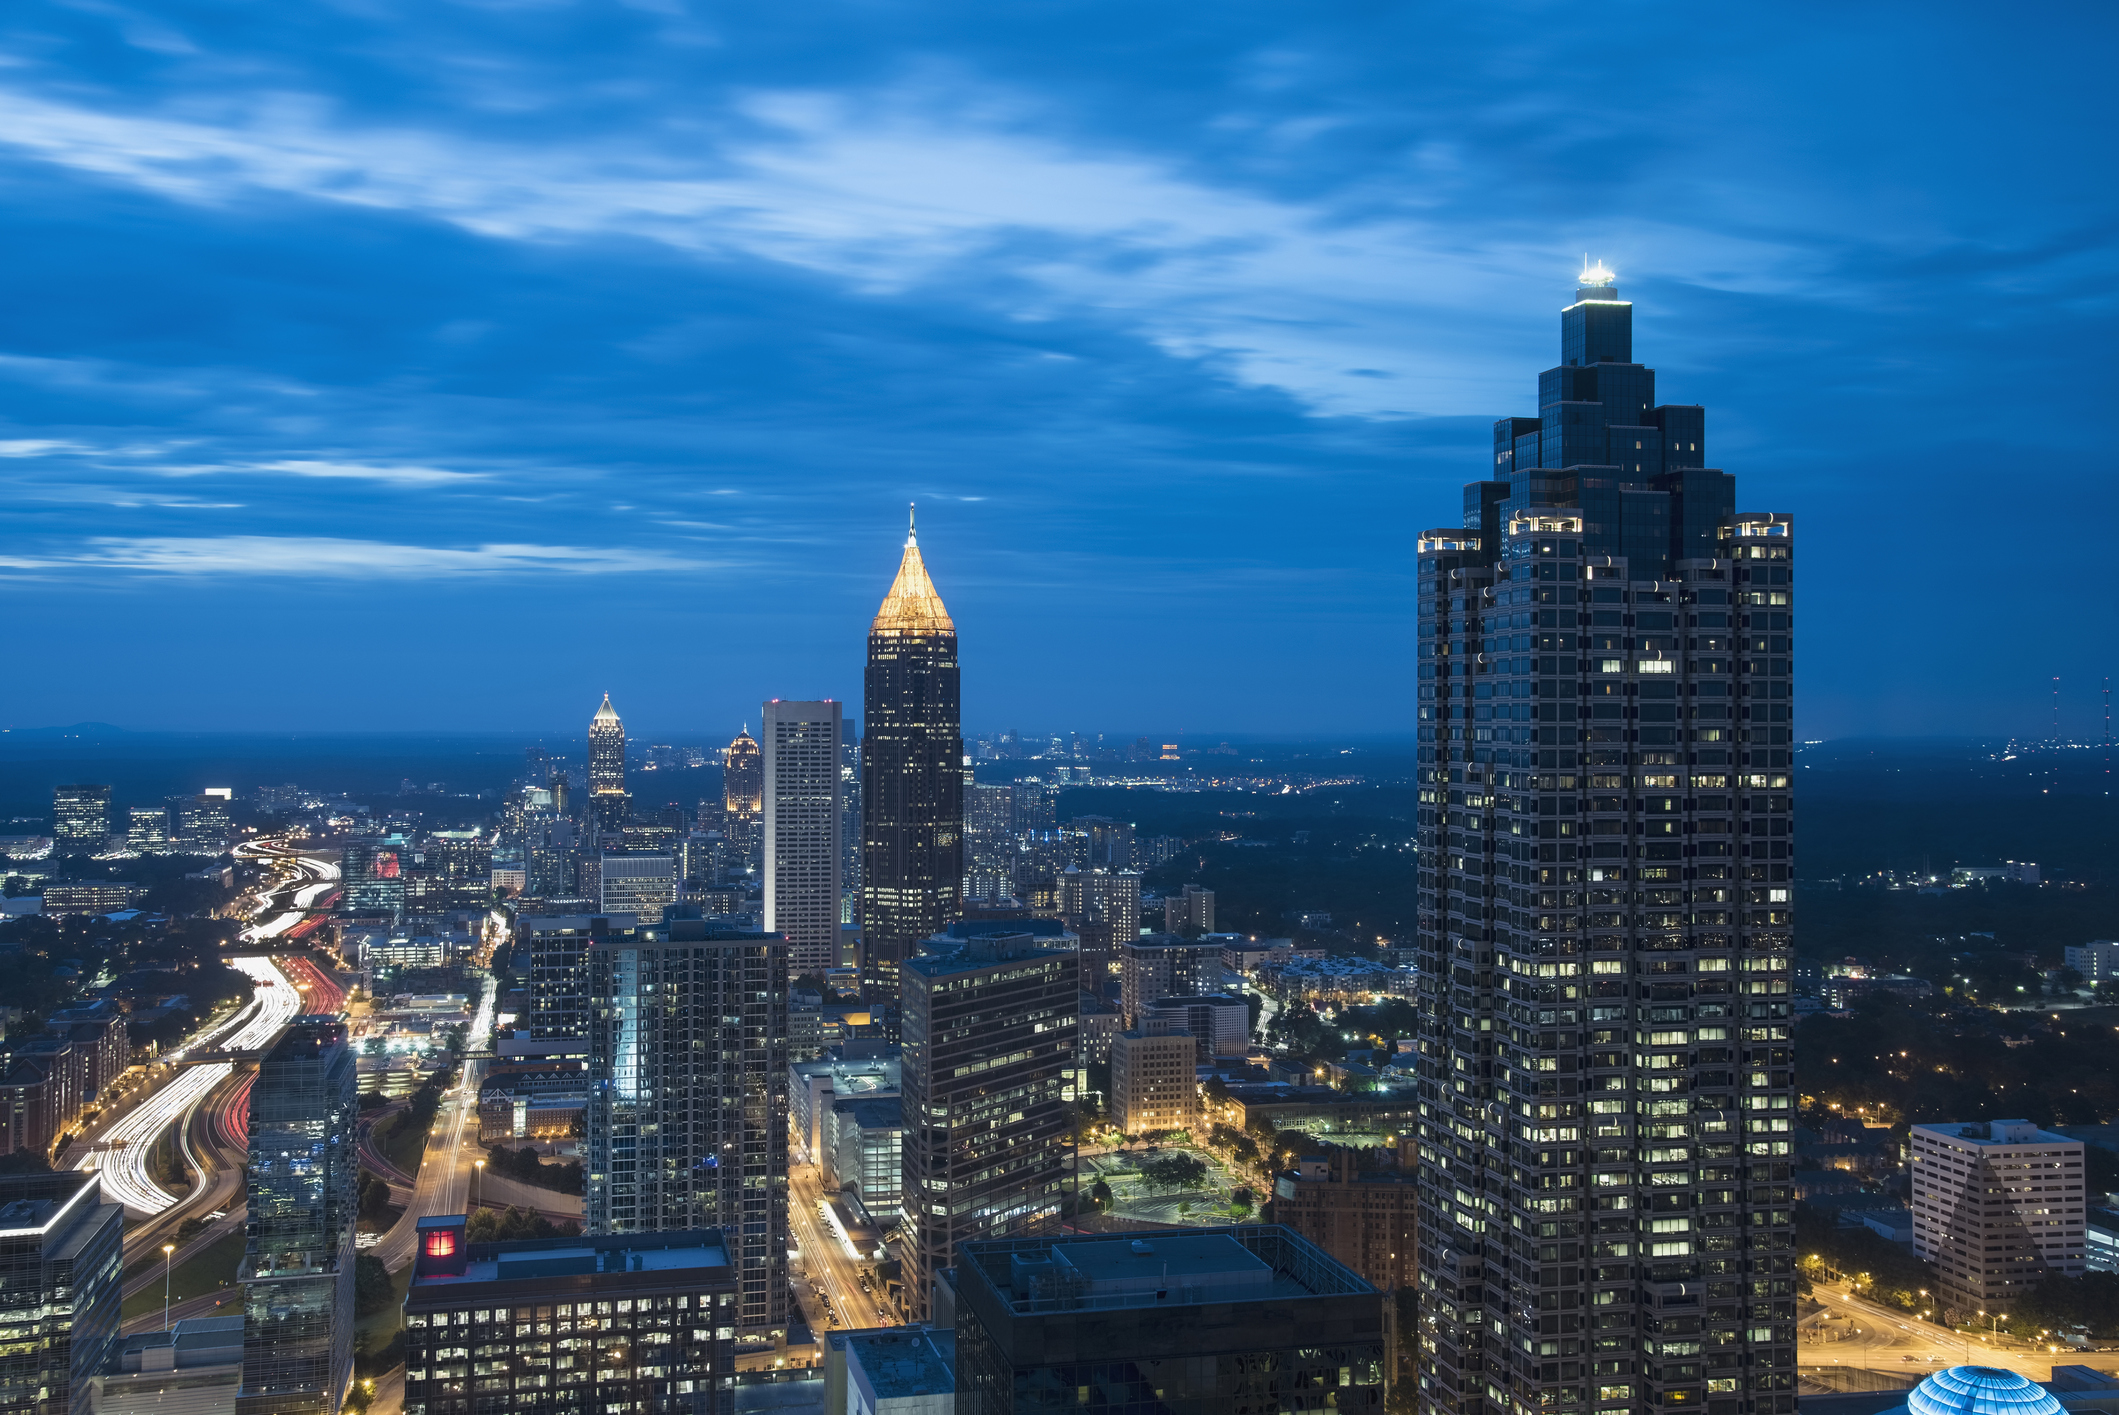 USA, Georgia, Atlanta, Cityscape with skyscrapers at dusk